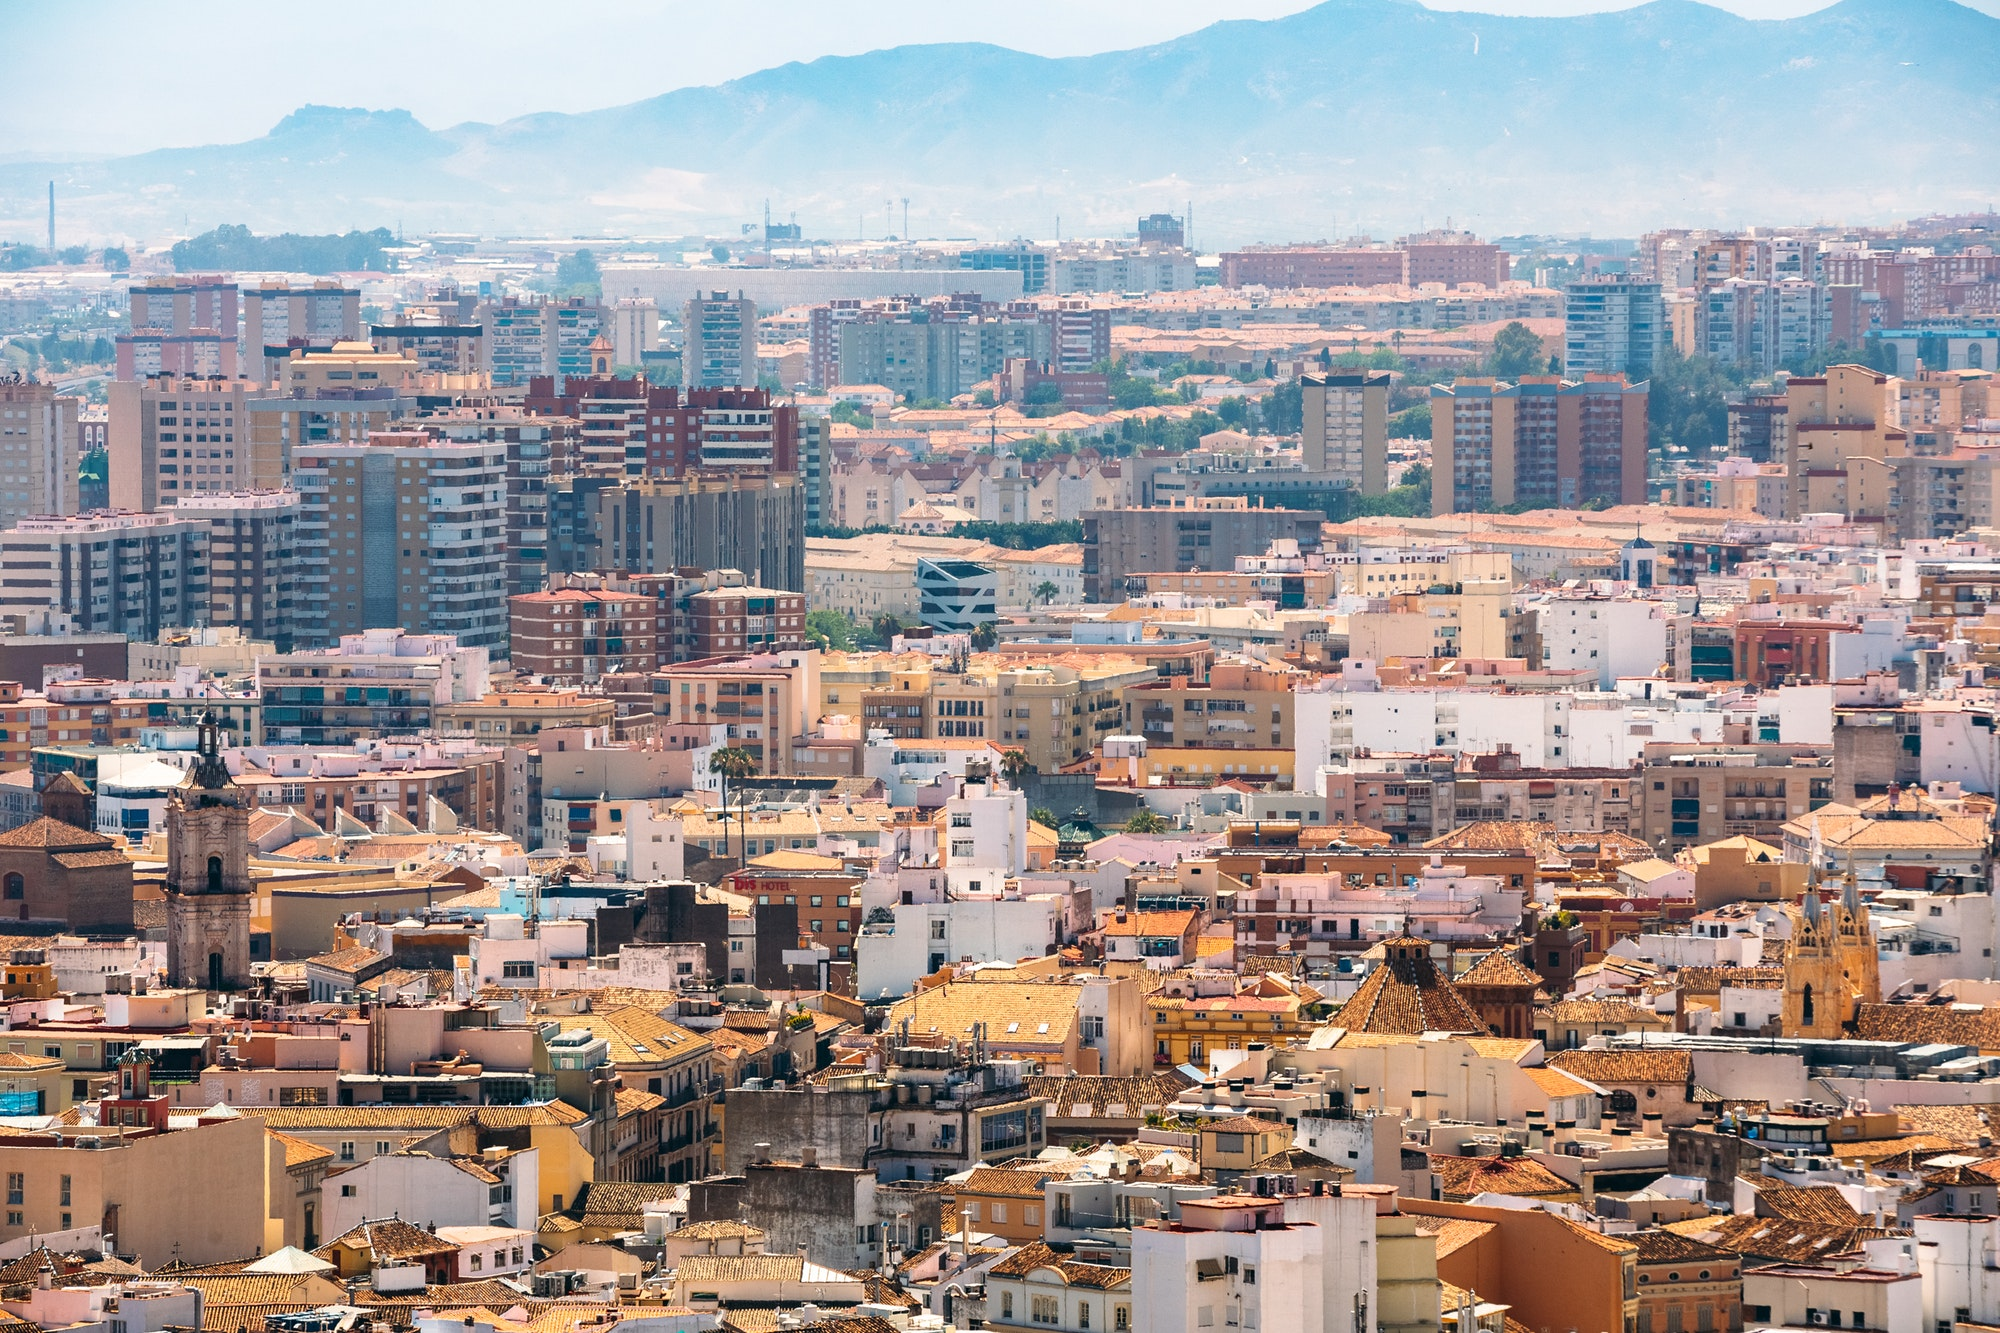 Spanish property prices are down 30% since 2005